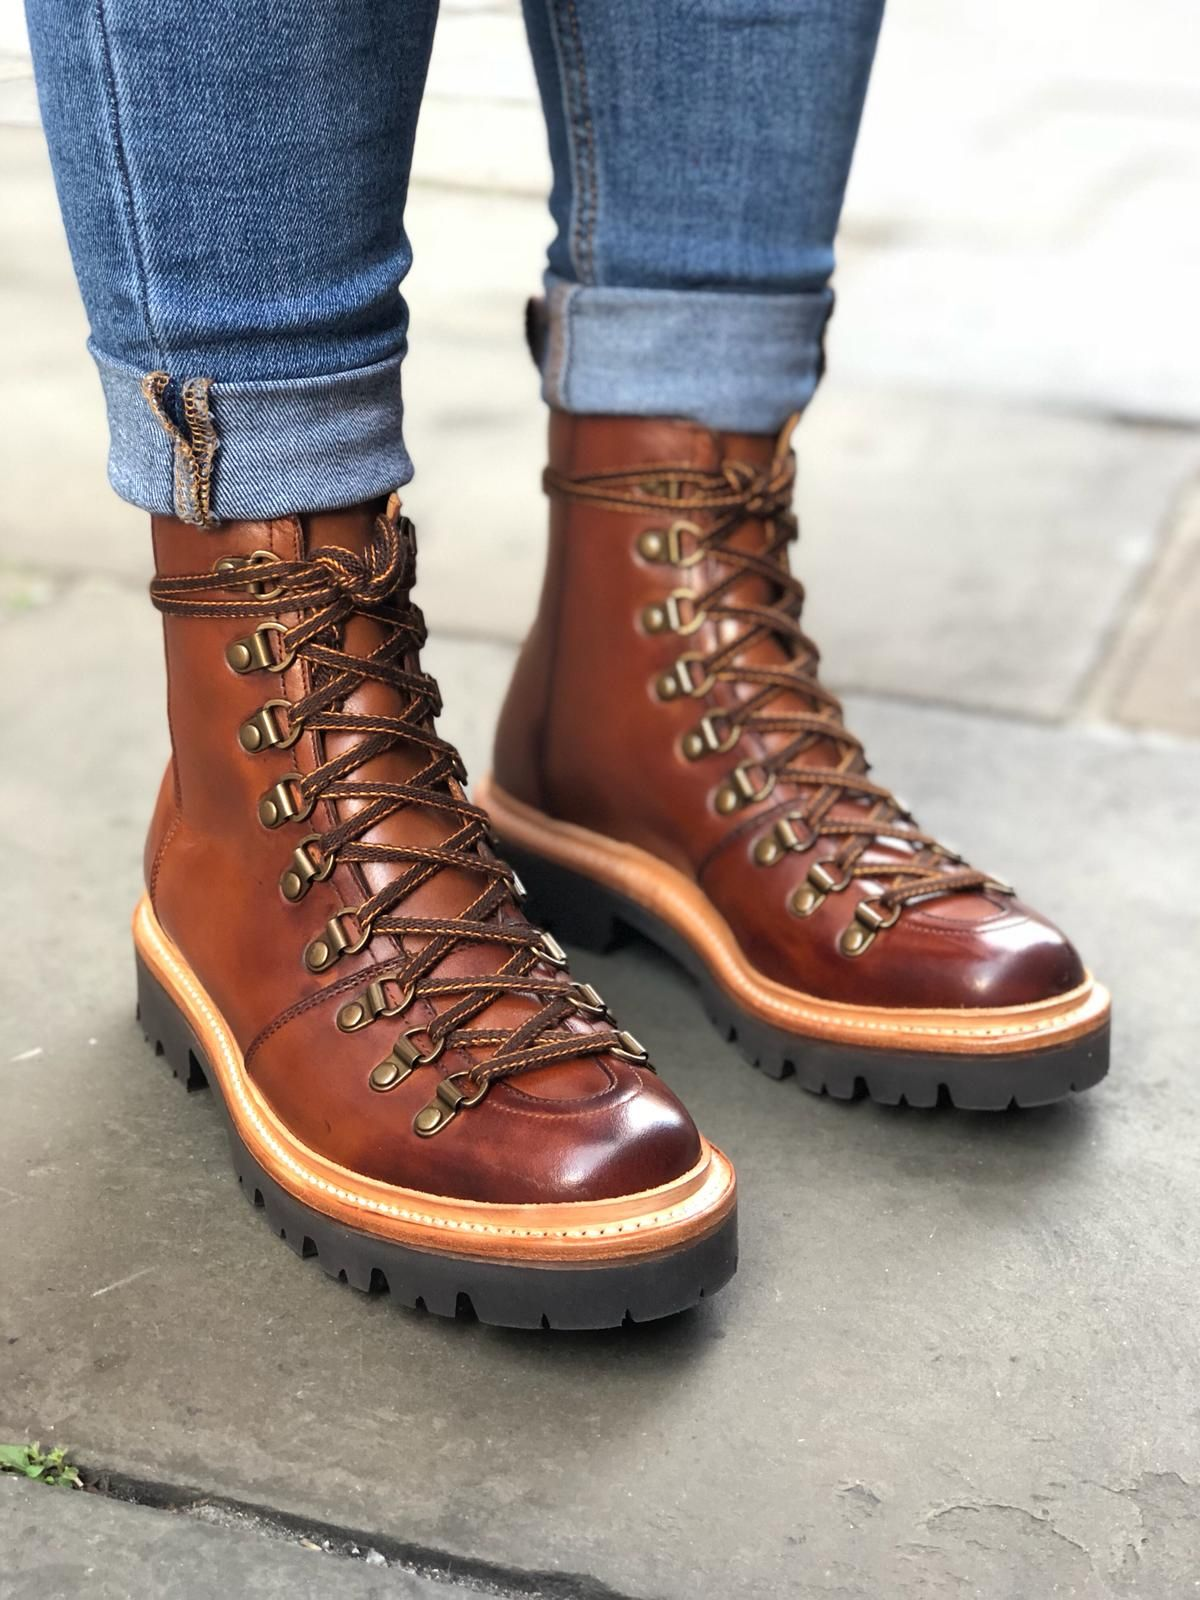 70b61ff4187 Grenson in Tan Hand Painted | Shoes in 2019 | Boots, Shoe boots ...